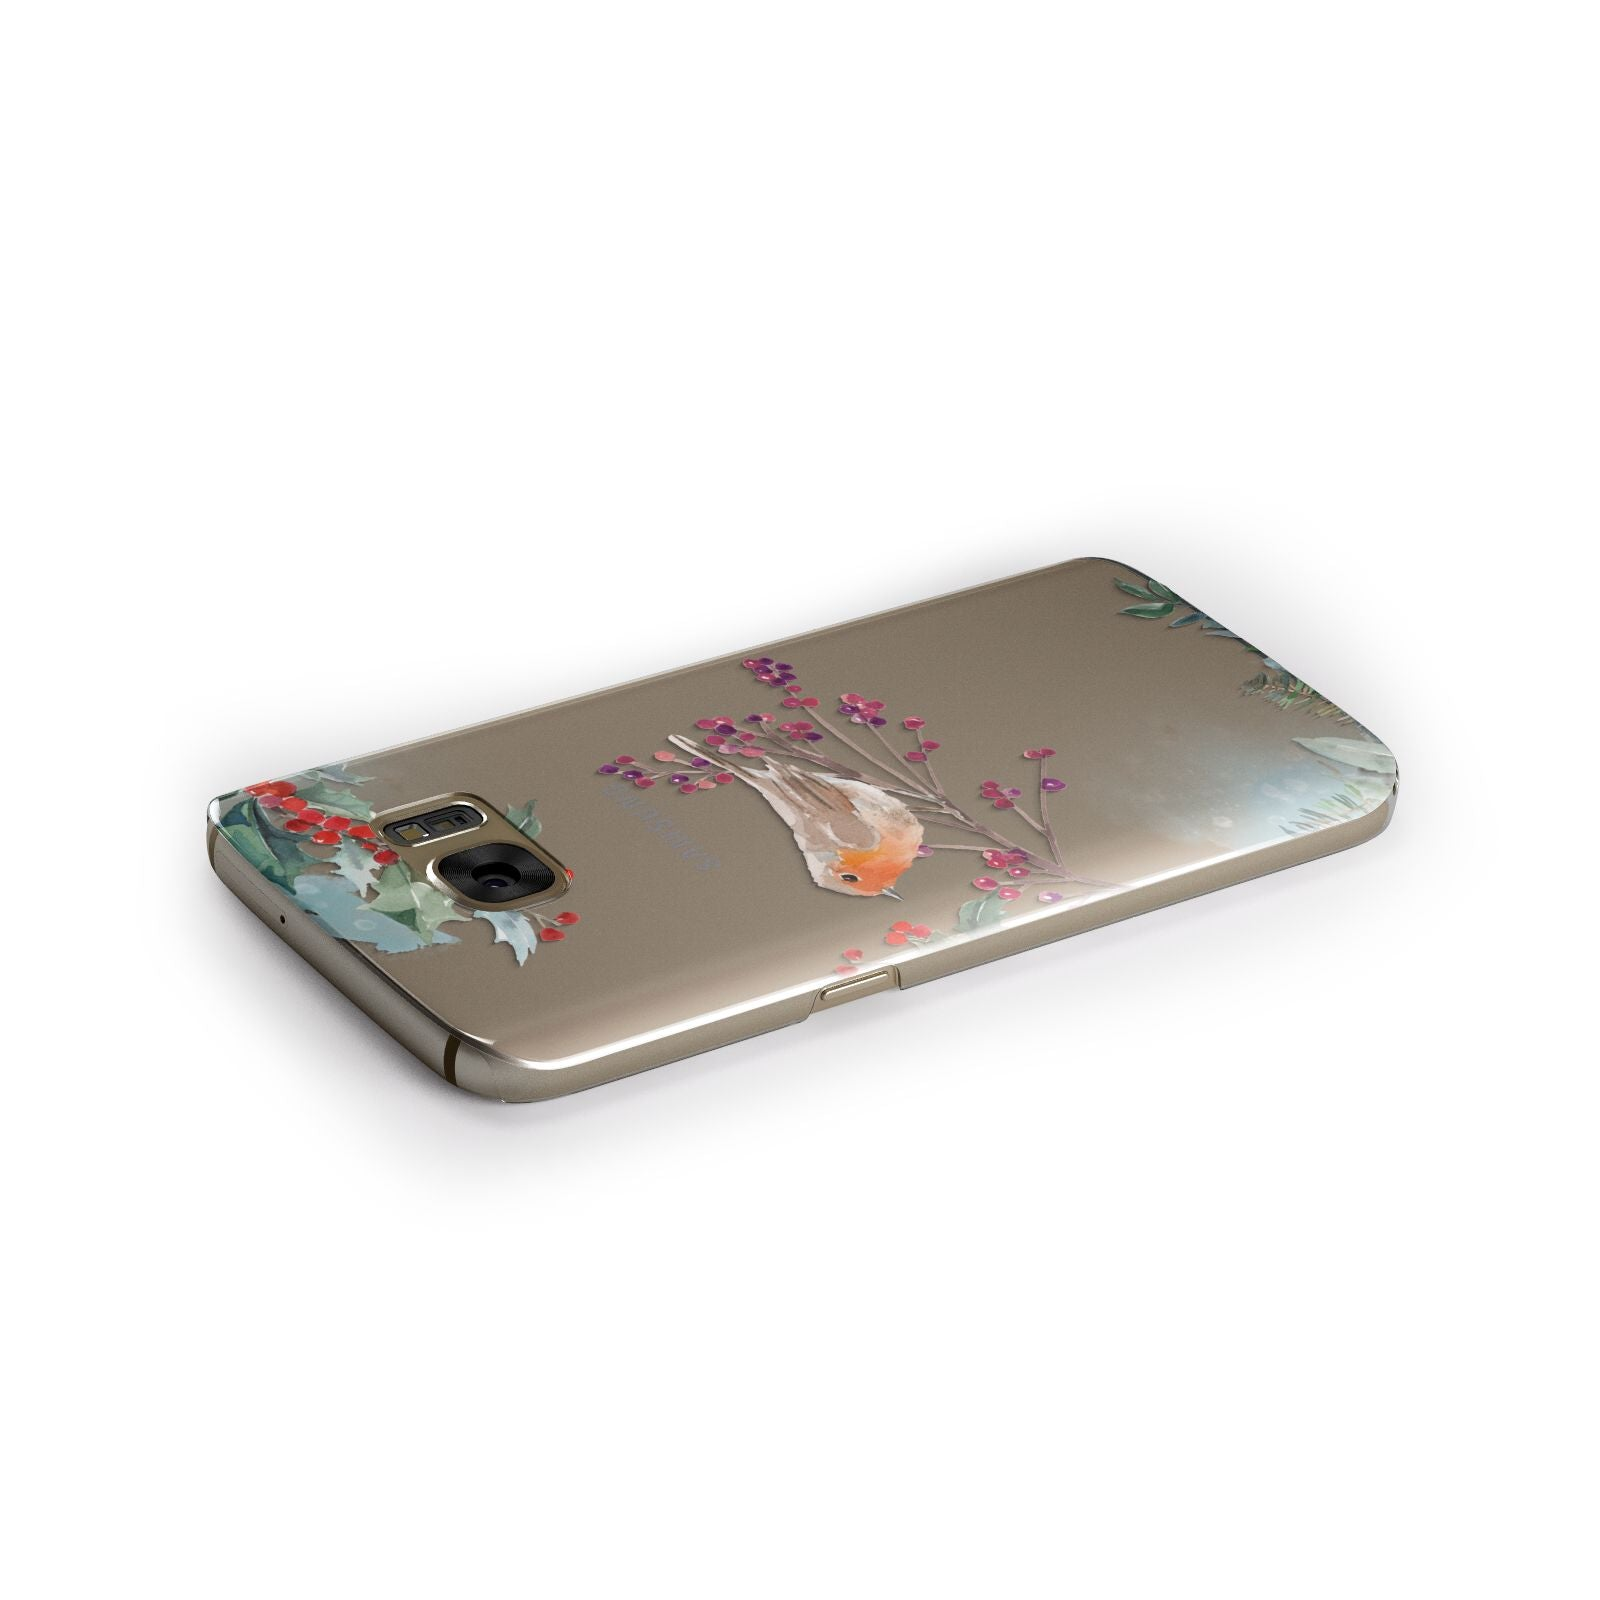 Christmas Robin Floral Samsung Galaxy Case Side Close Up